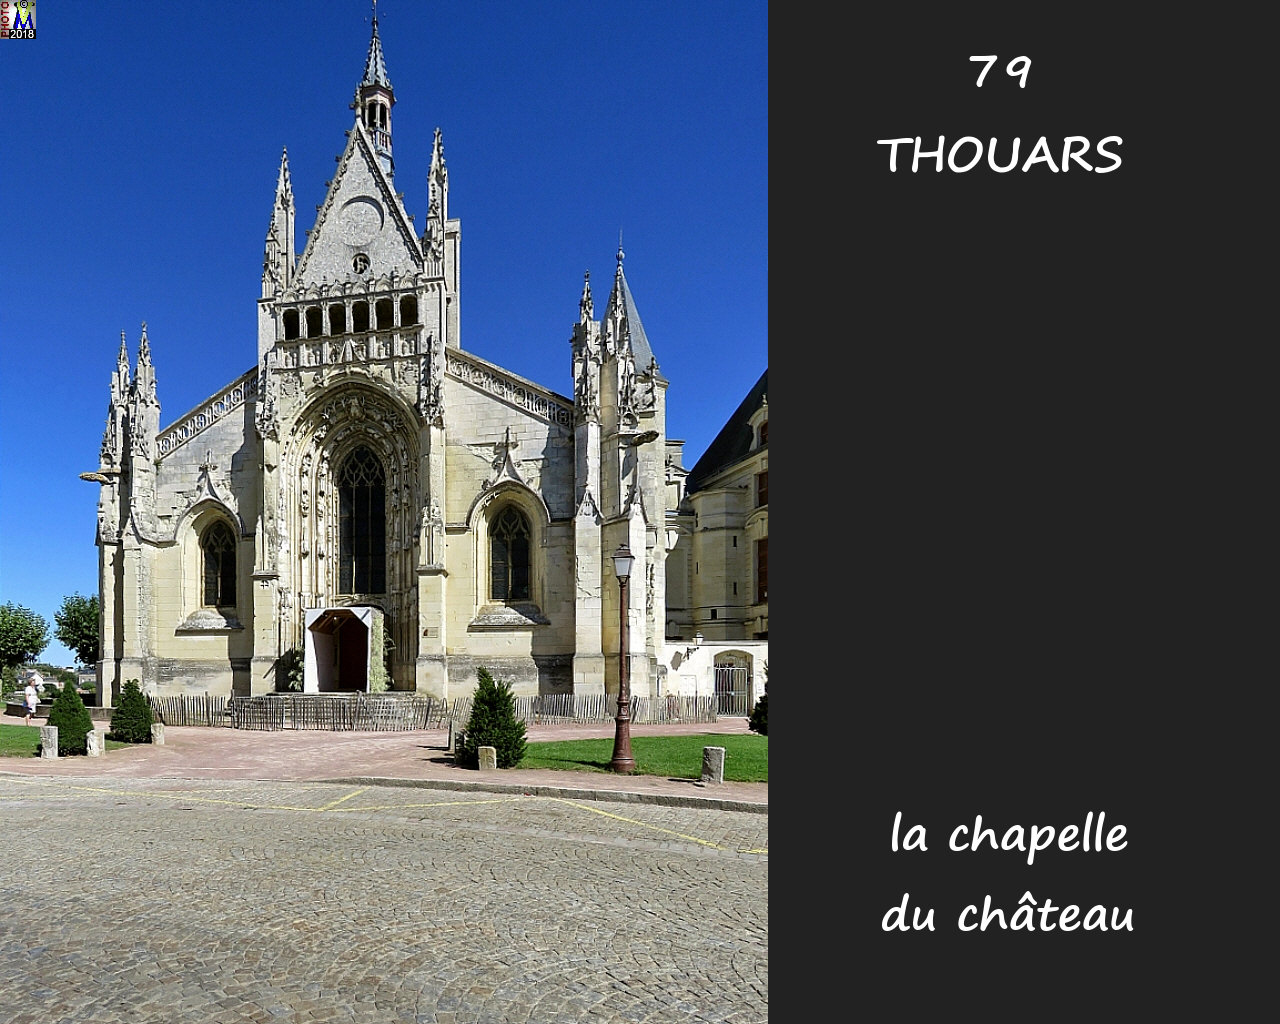 79THOUARS_chateau_1202.jpg